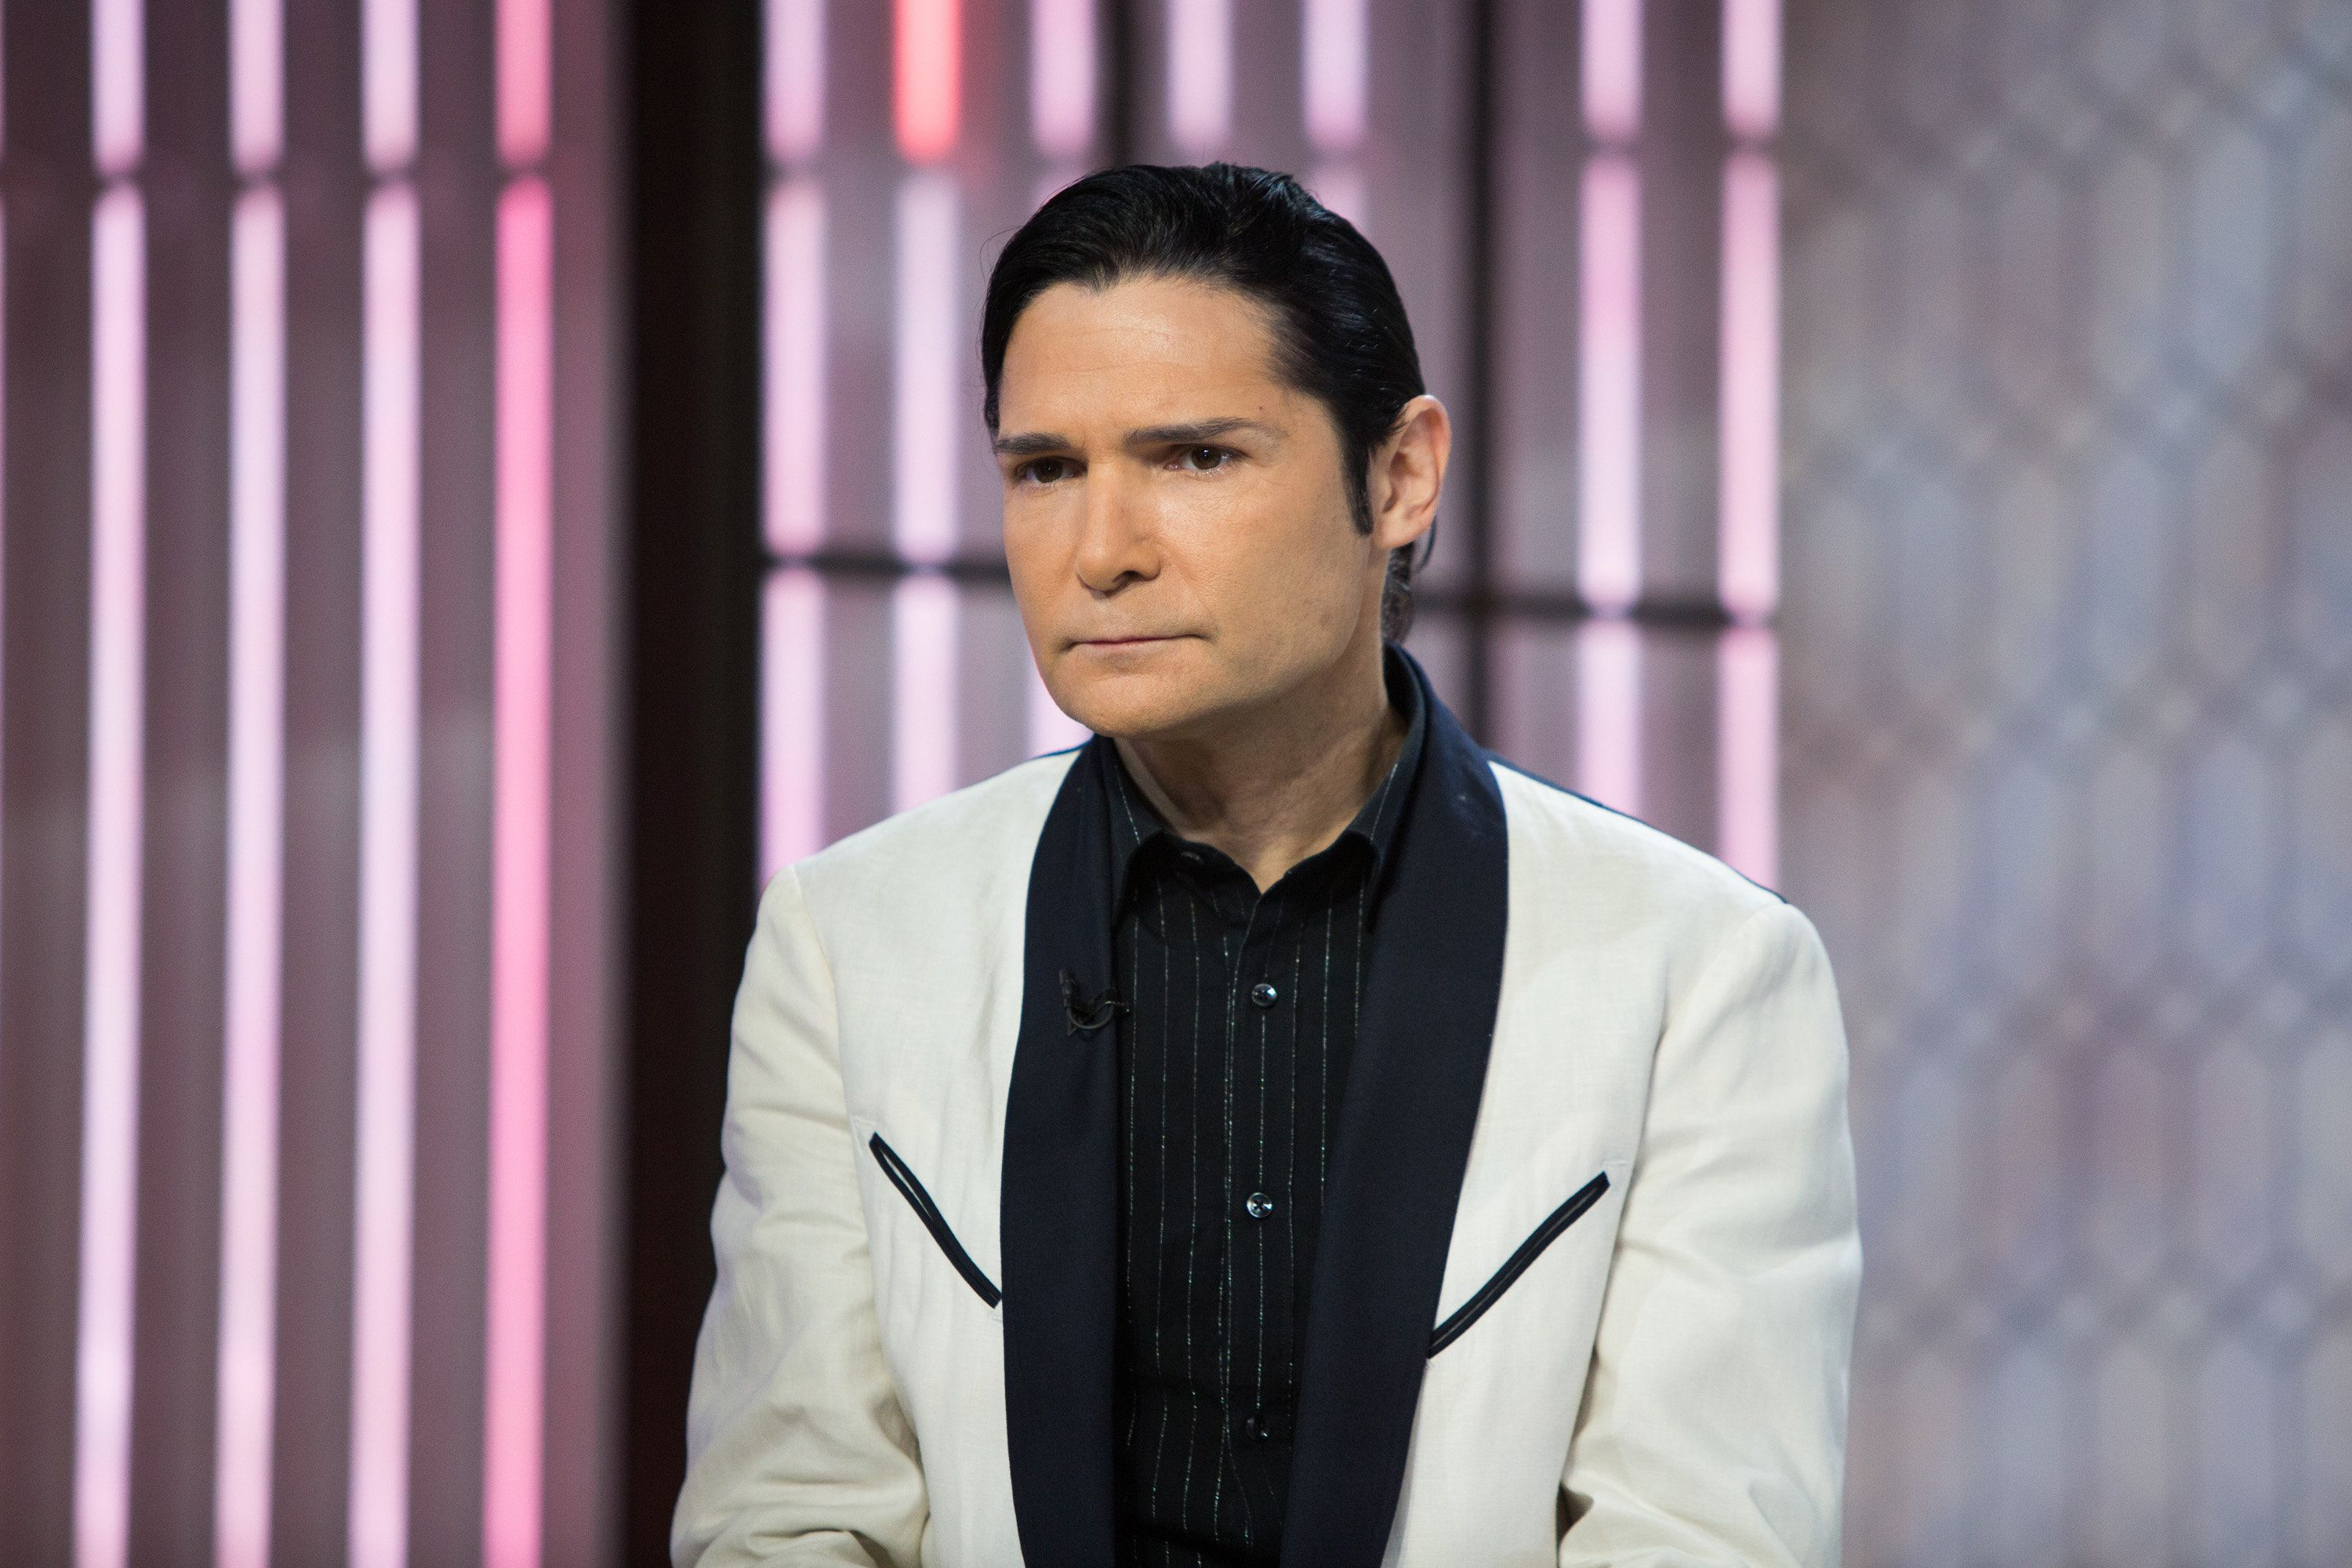 California sheriffs have found Corey Feldman's 1993 recorded testimony naming Hollywood pedophiles